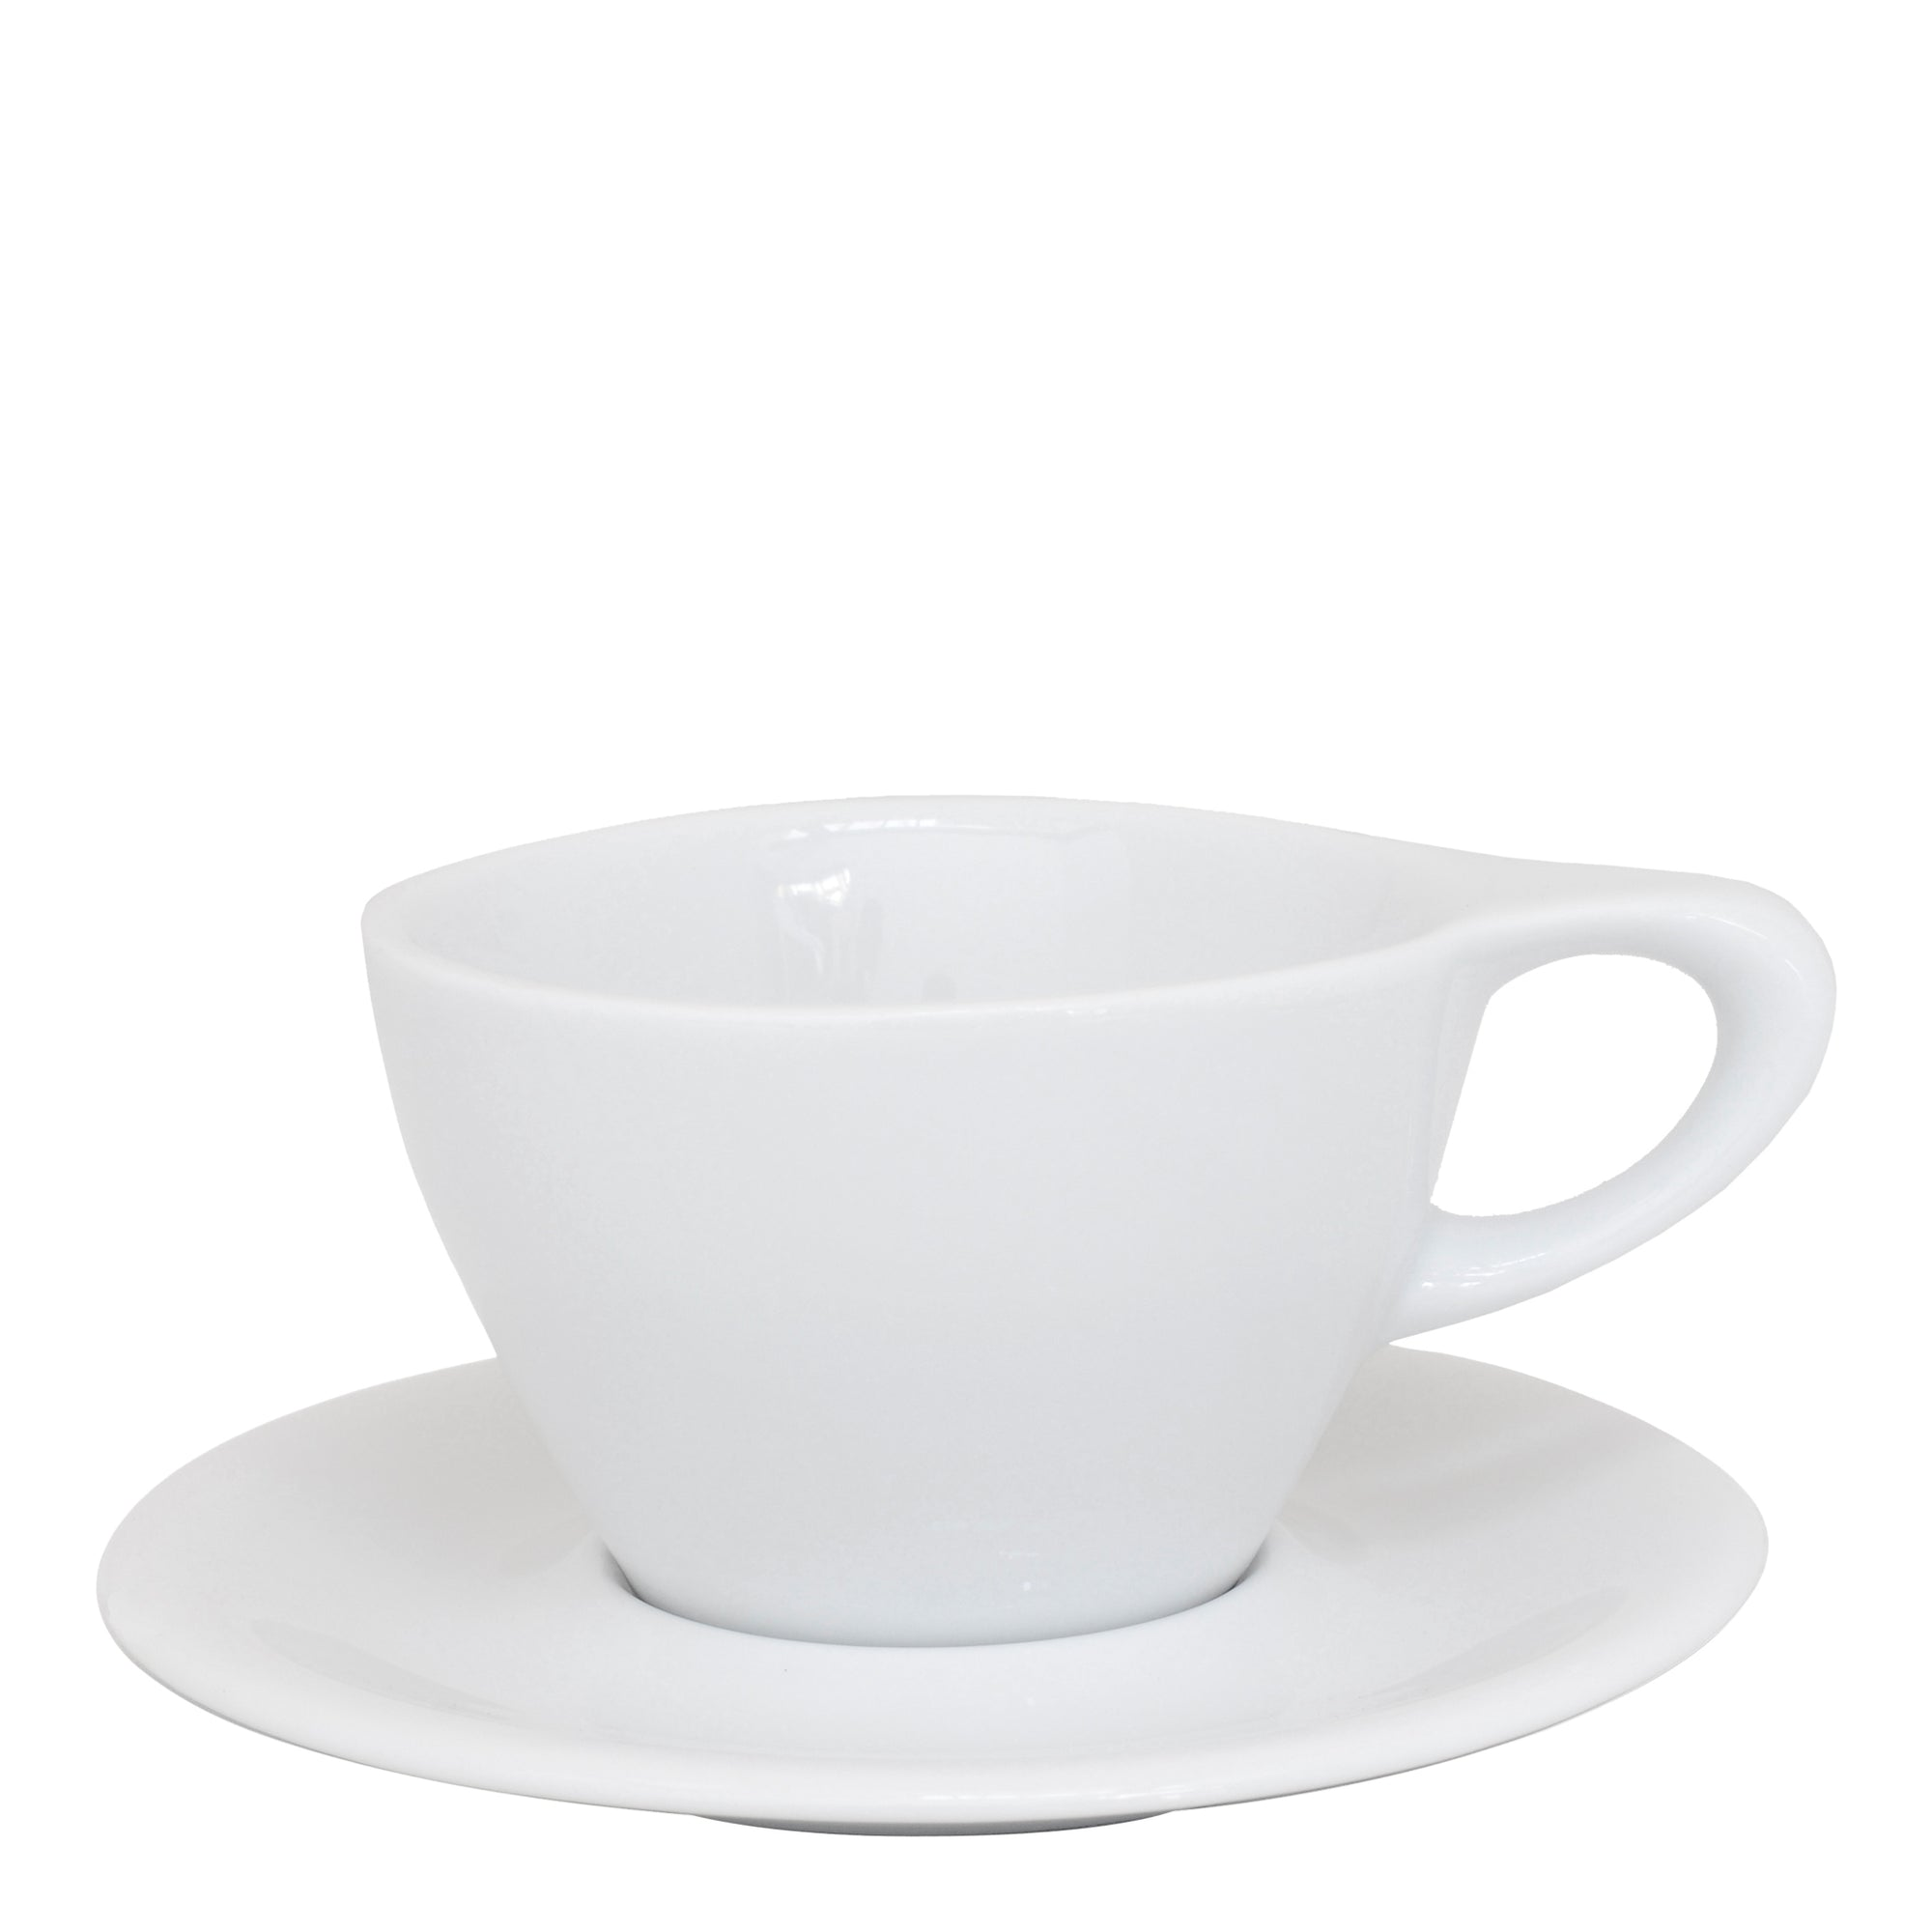 NN Lino Large Latte / Tea Cup 12oz/36cl - Espresso Gear